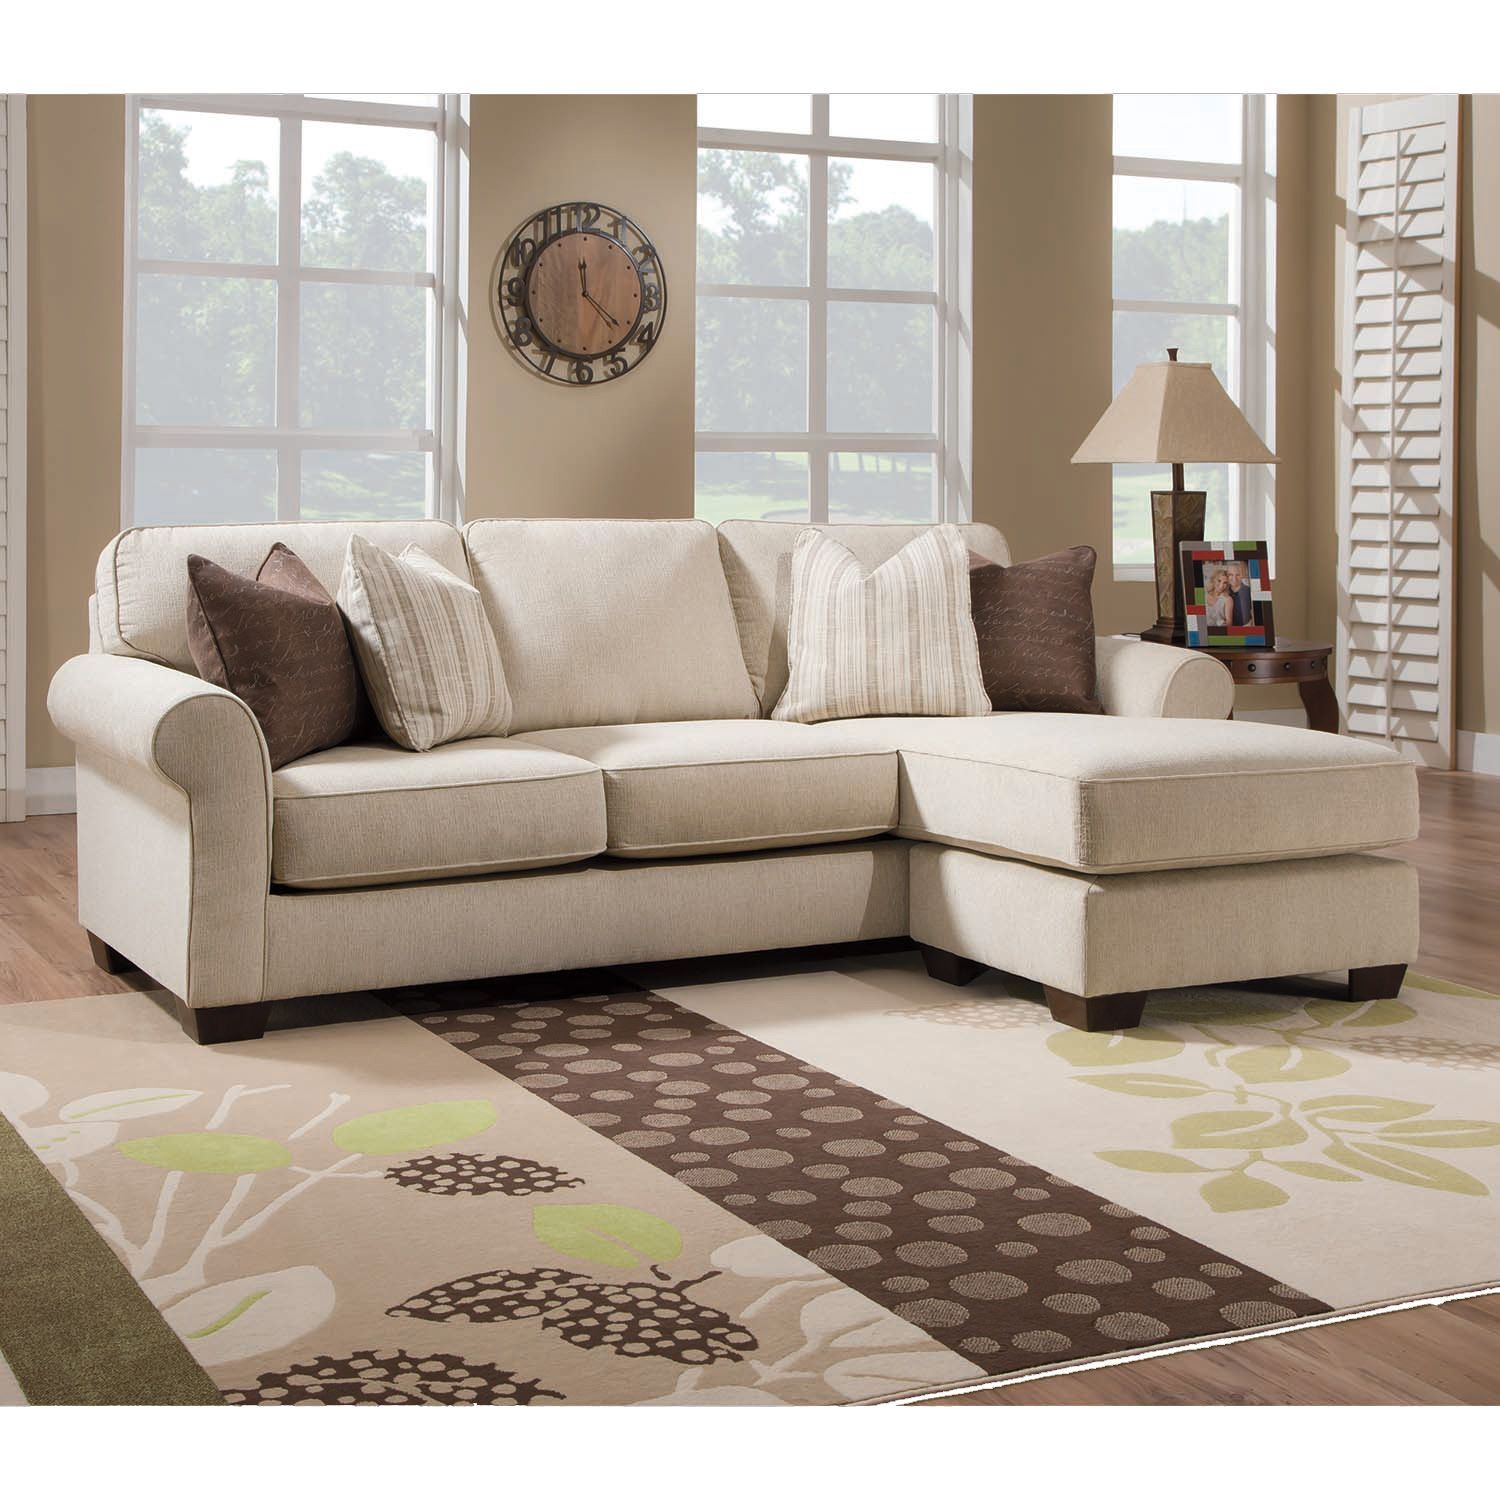 Berkline Sectional Sofa With Chaise